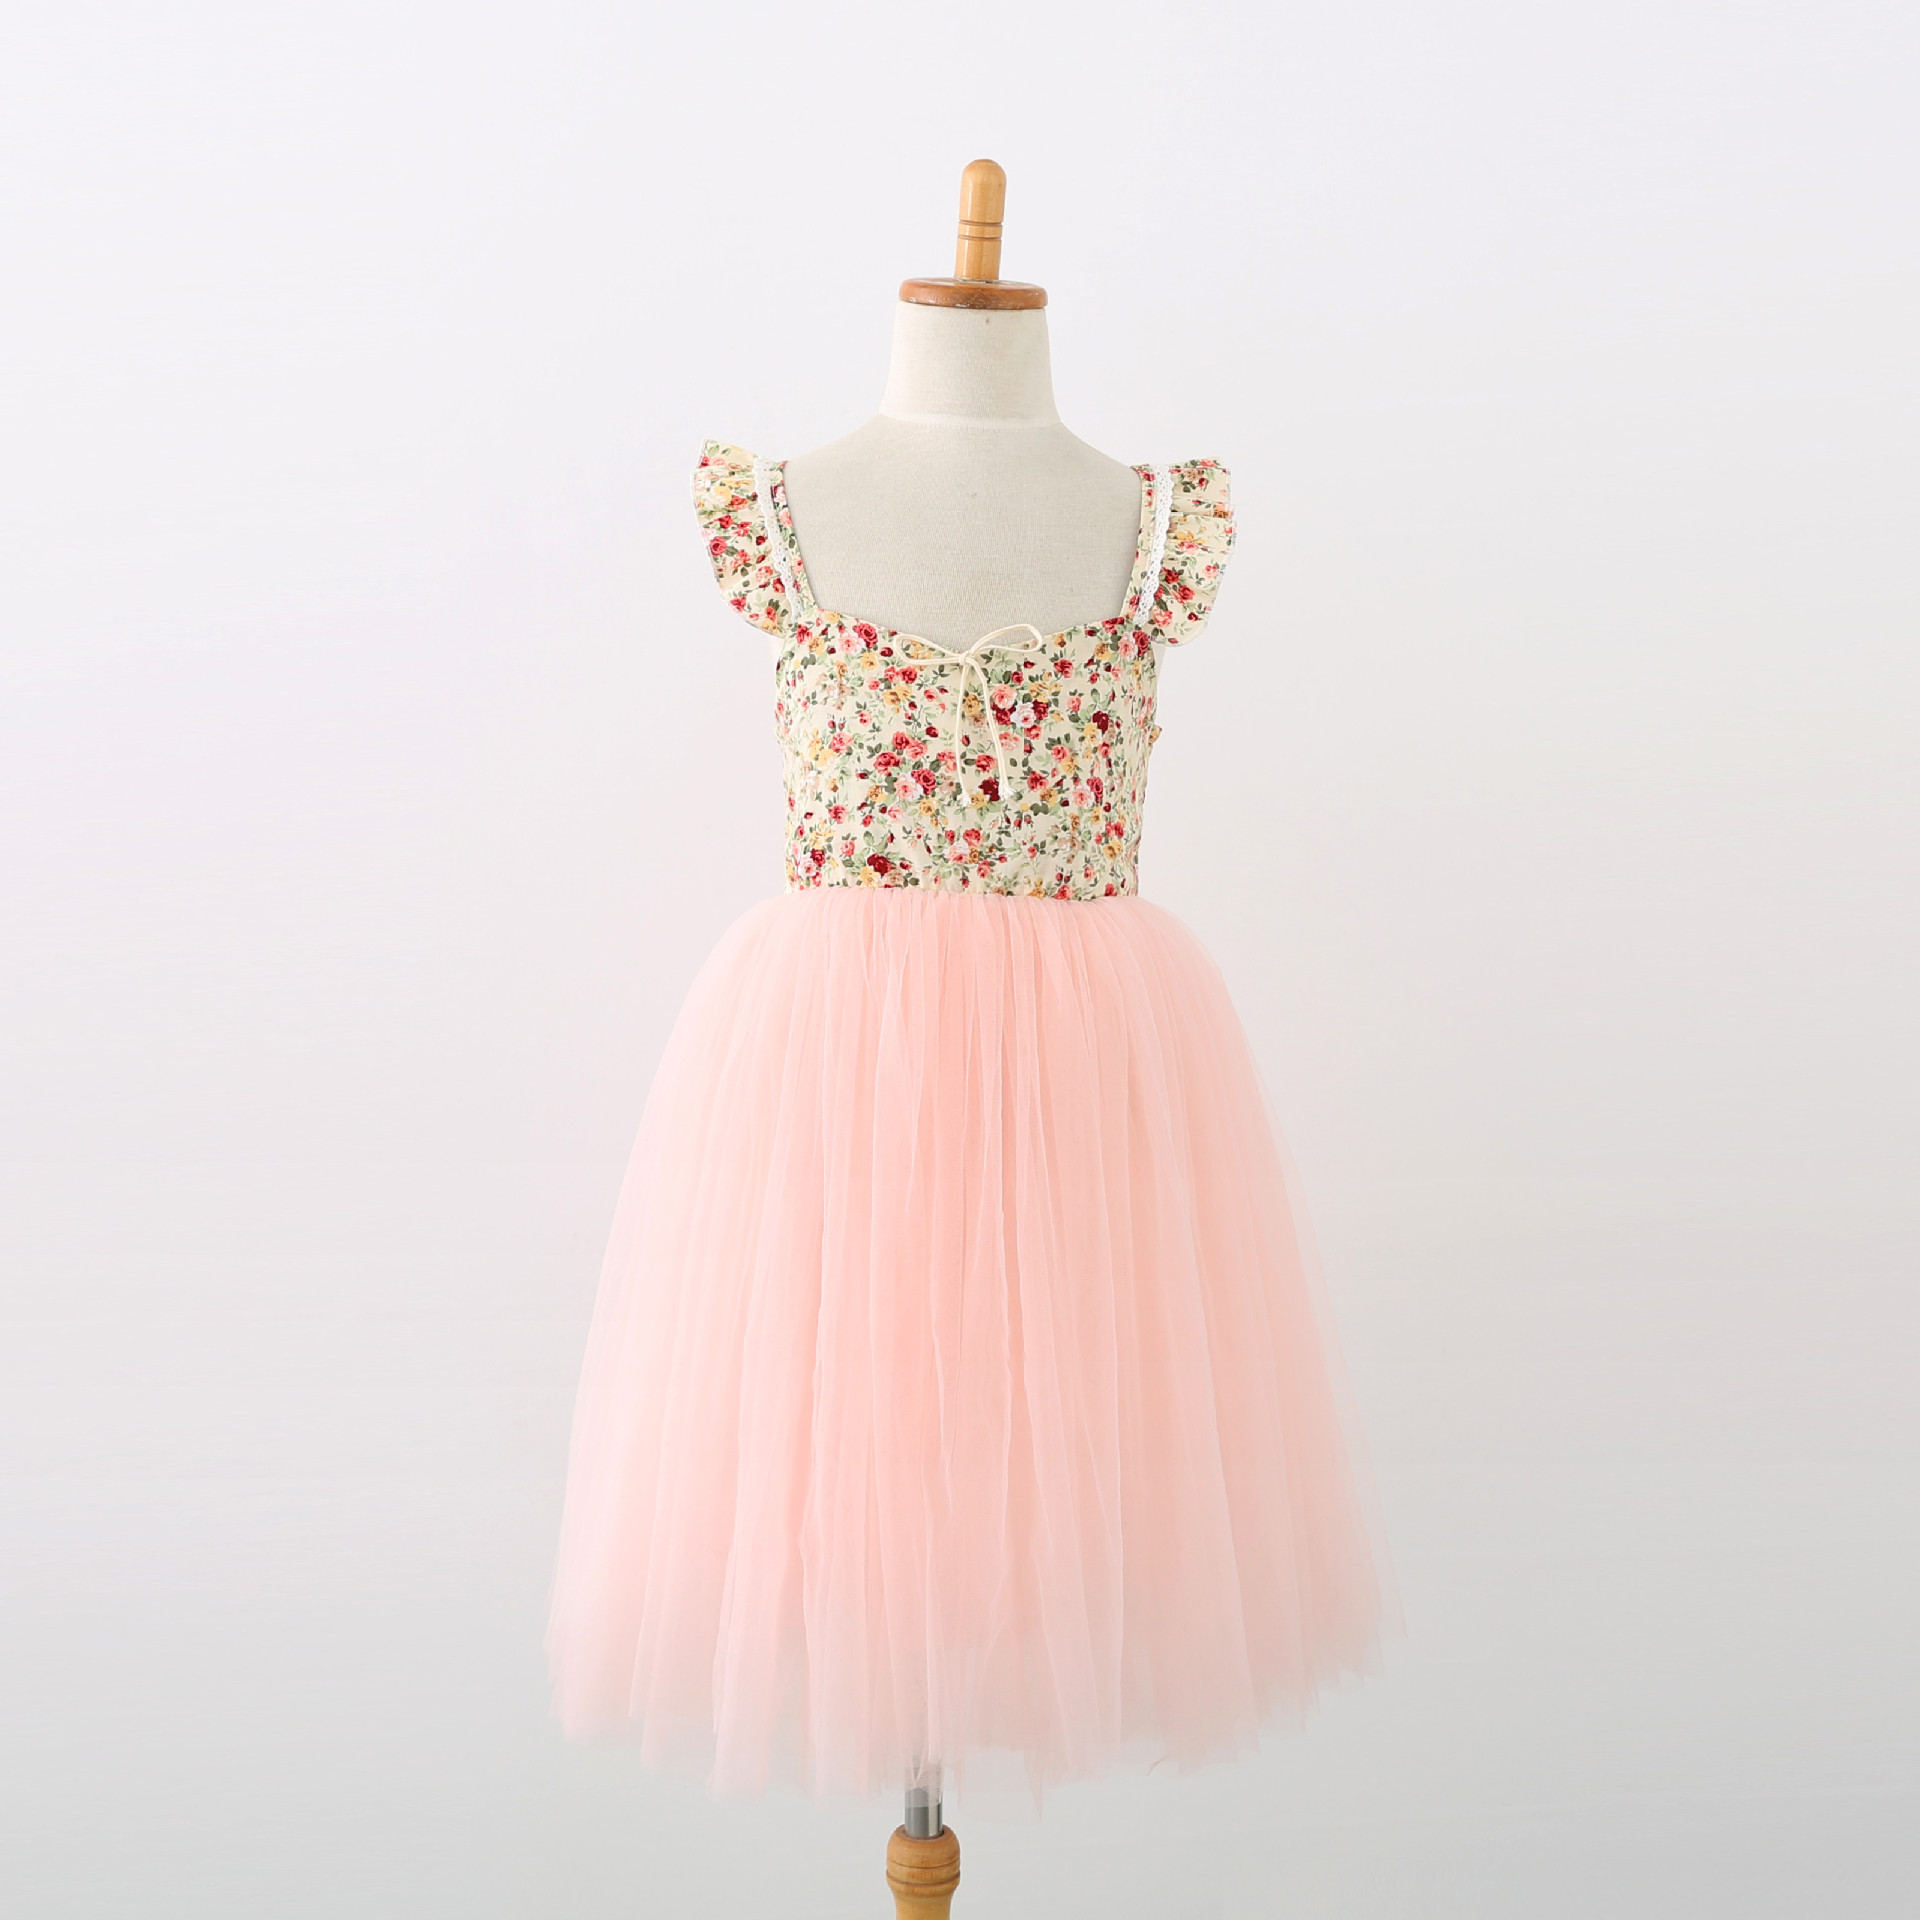 New Ins European and American Children's Princess Dress Girls' Performance Wedding Dress Girls Fashion Tutu Dresses ankle length-in Dresses from Mother & Kids    1